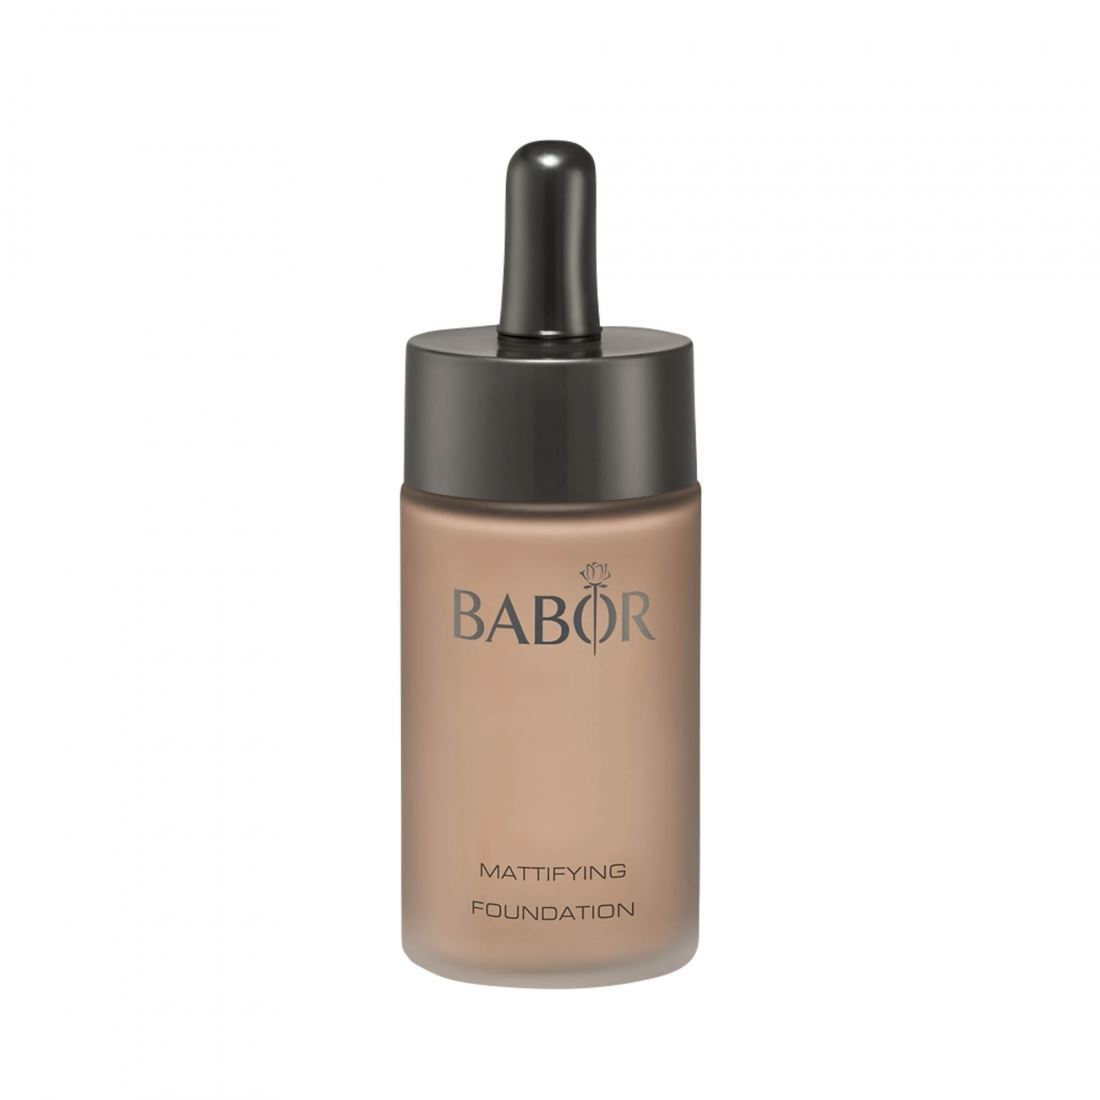 BABOR MATTIFYING FOUNDATION 02 natural - Imagen 1